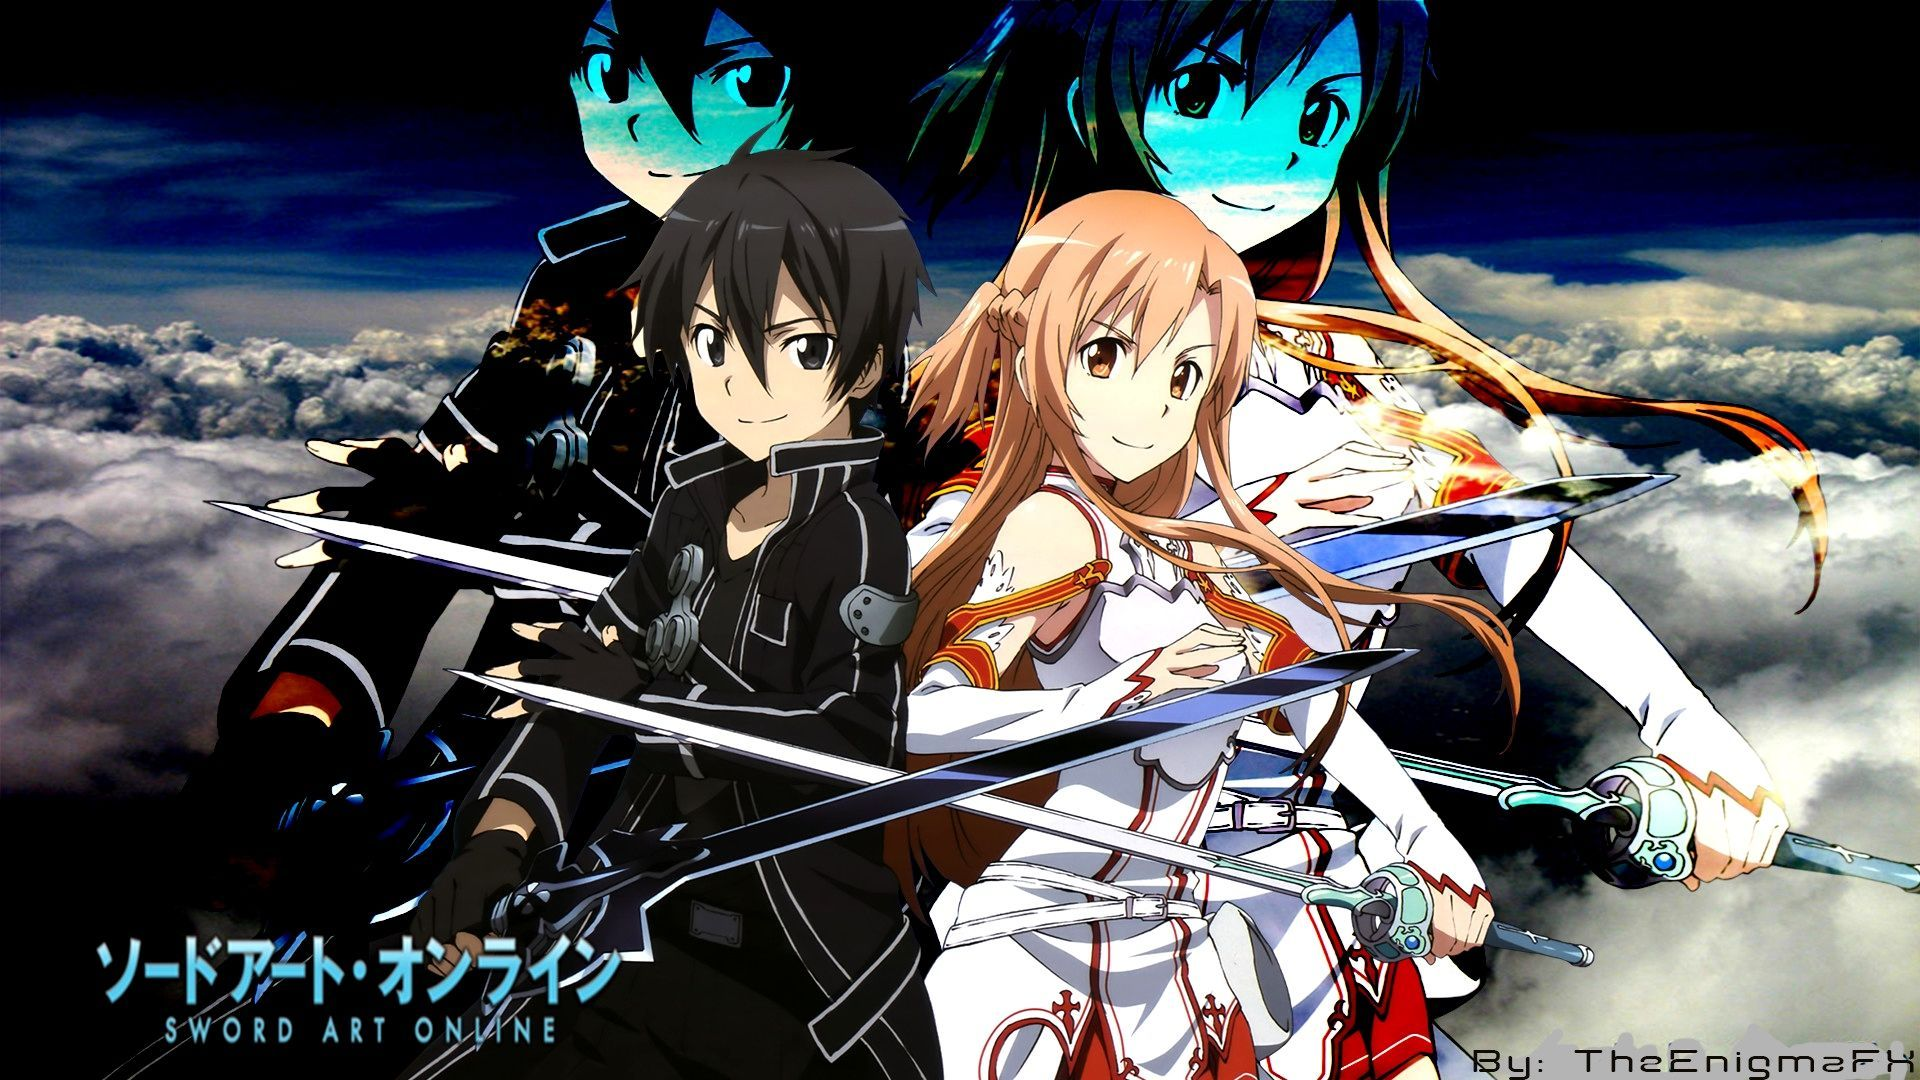 Sword Art Online Wallpaper 4k Pc Ideas 4k En 2020 Sword Art Online Kirito Sword Art Online Art Epee